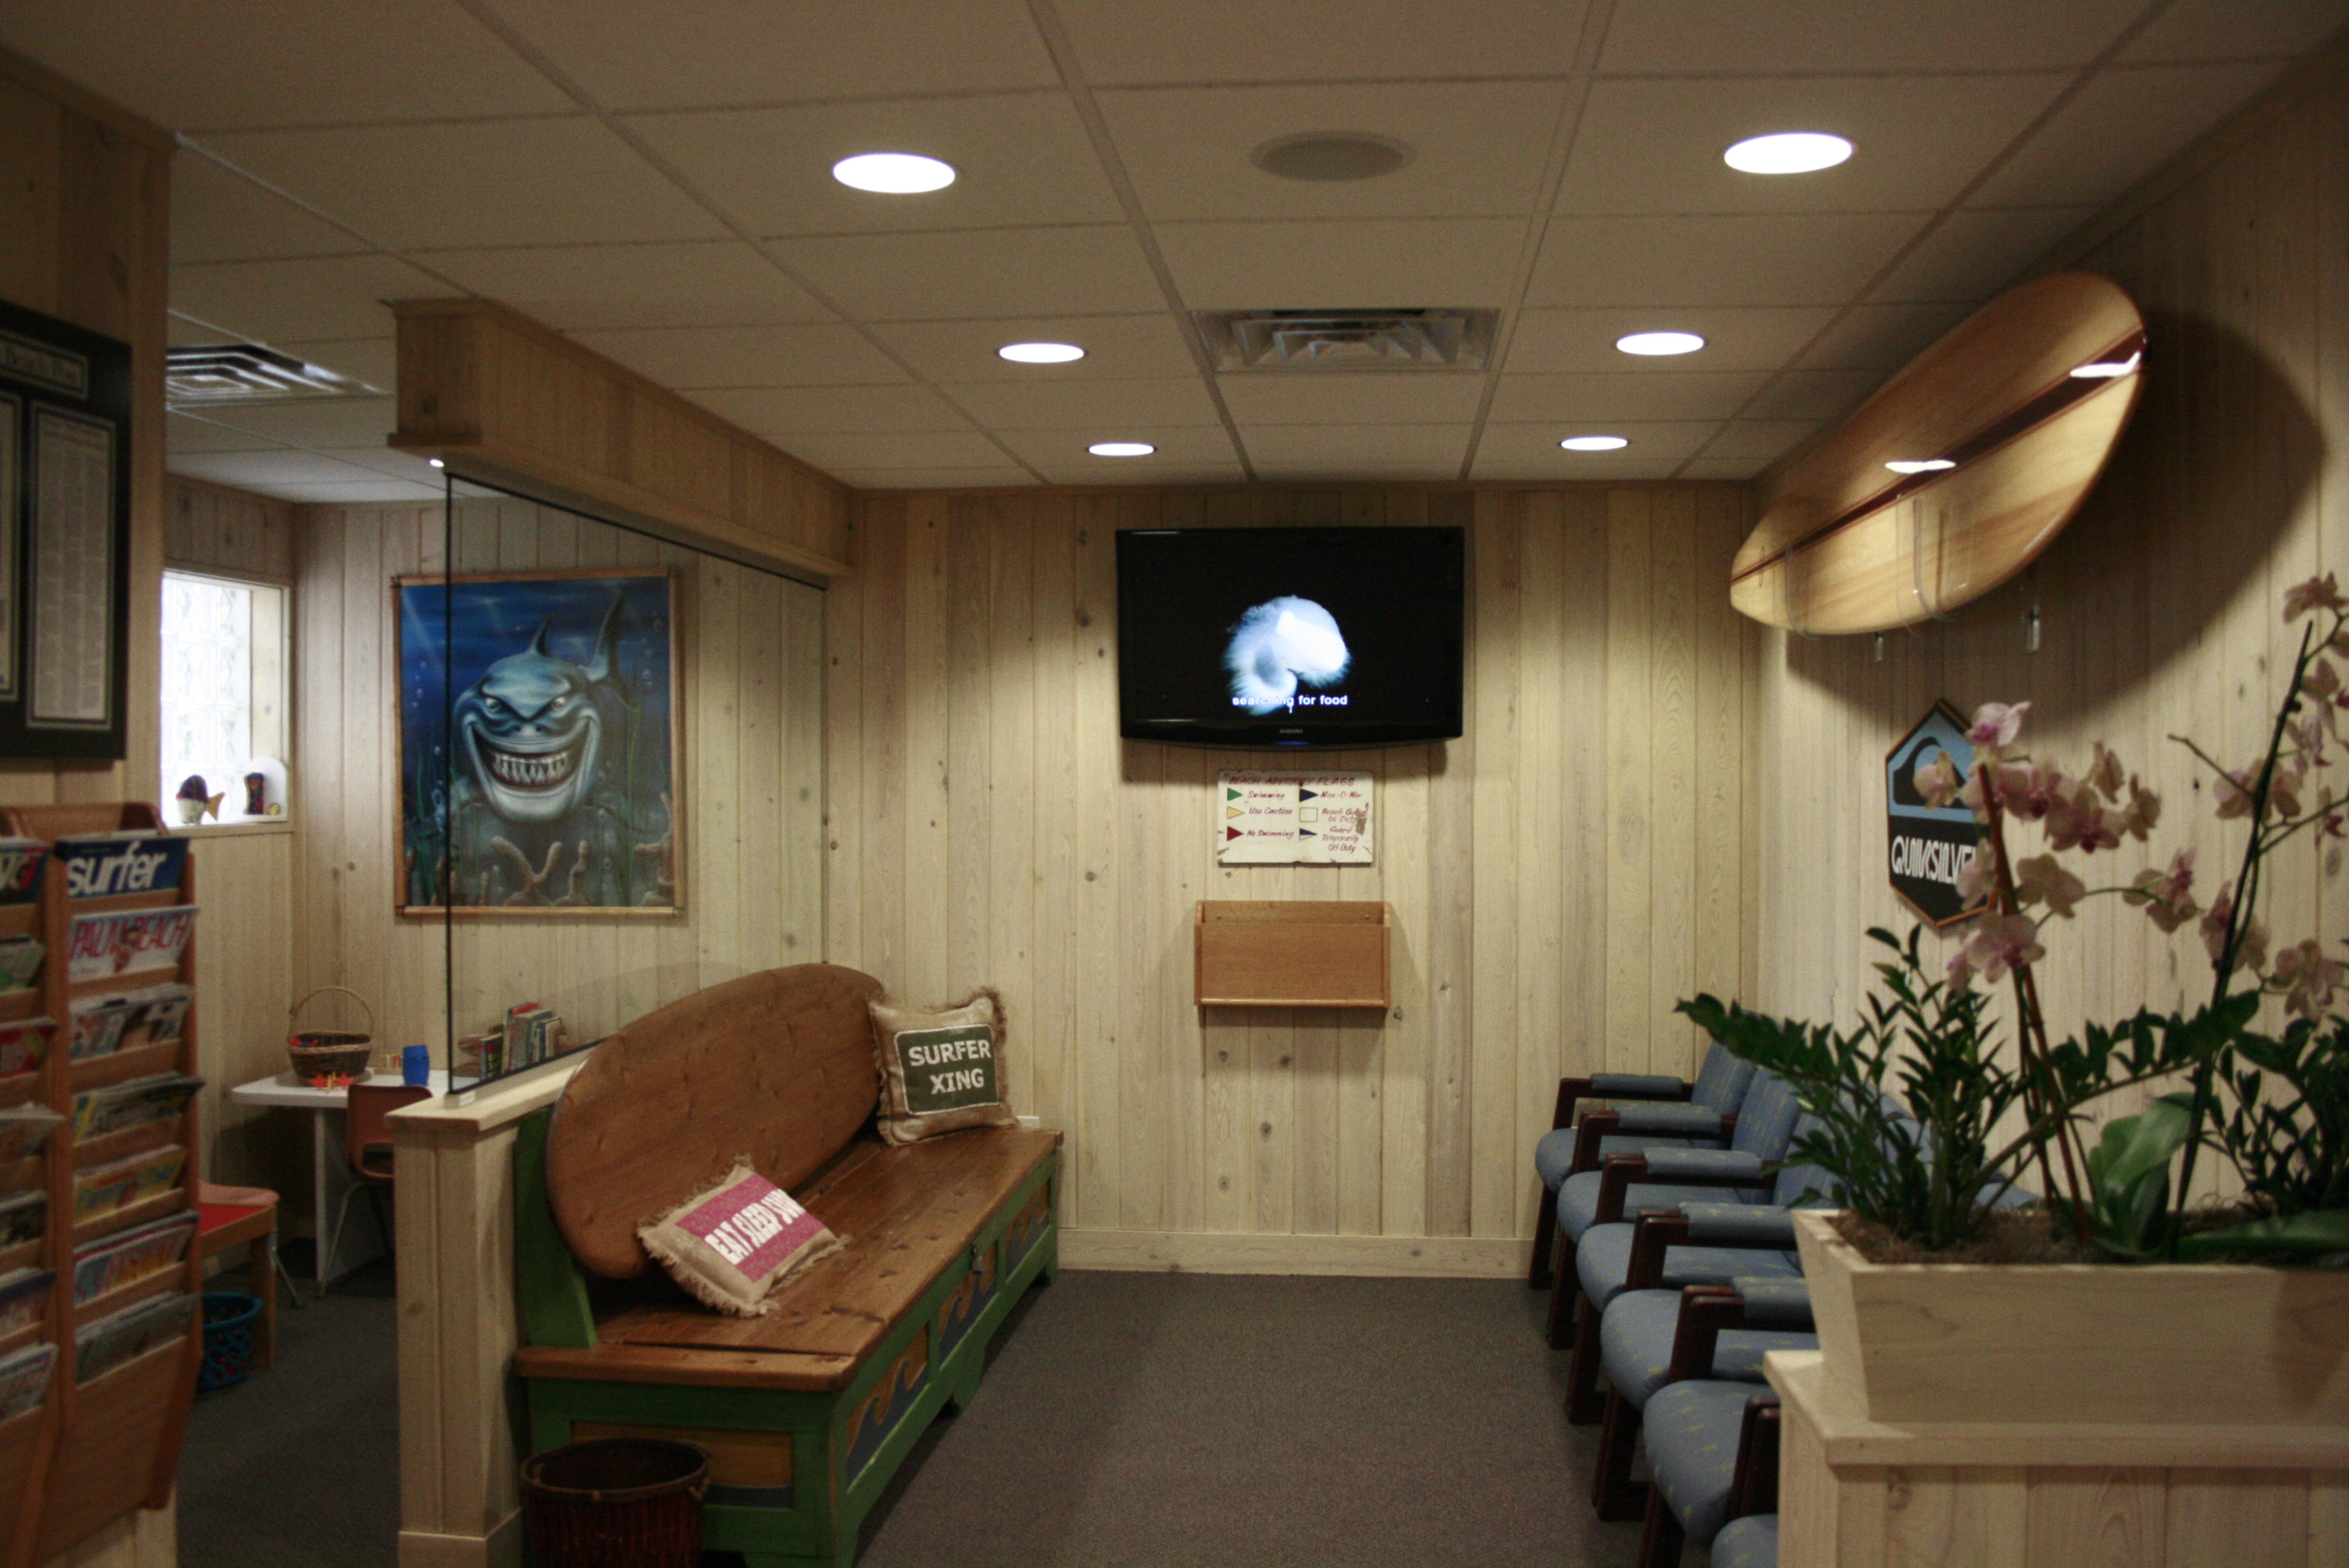 McCranels Ortho waiting area